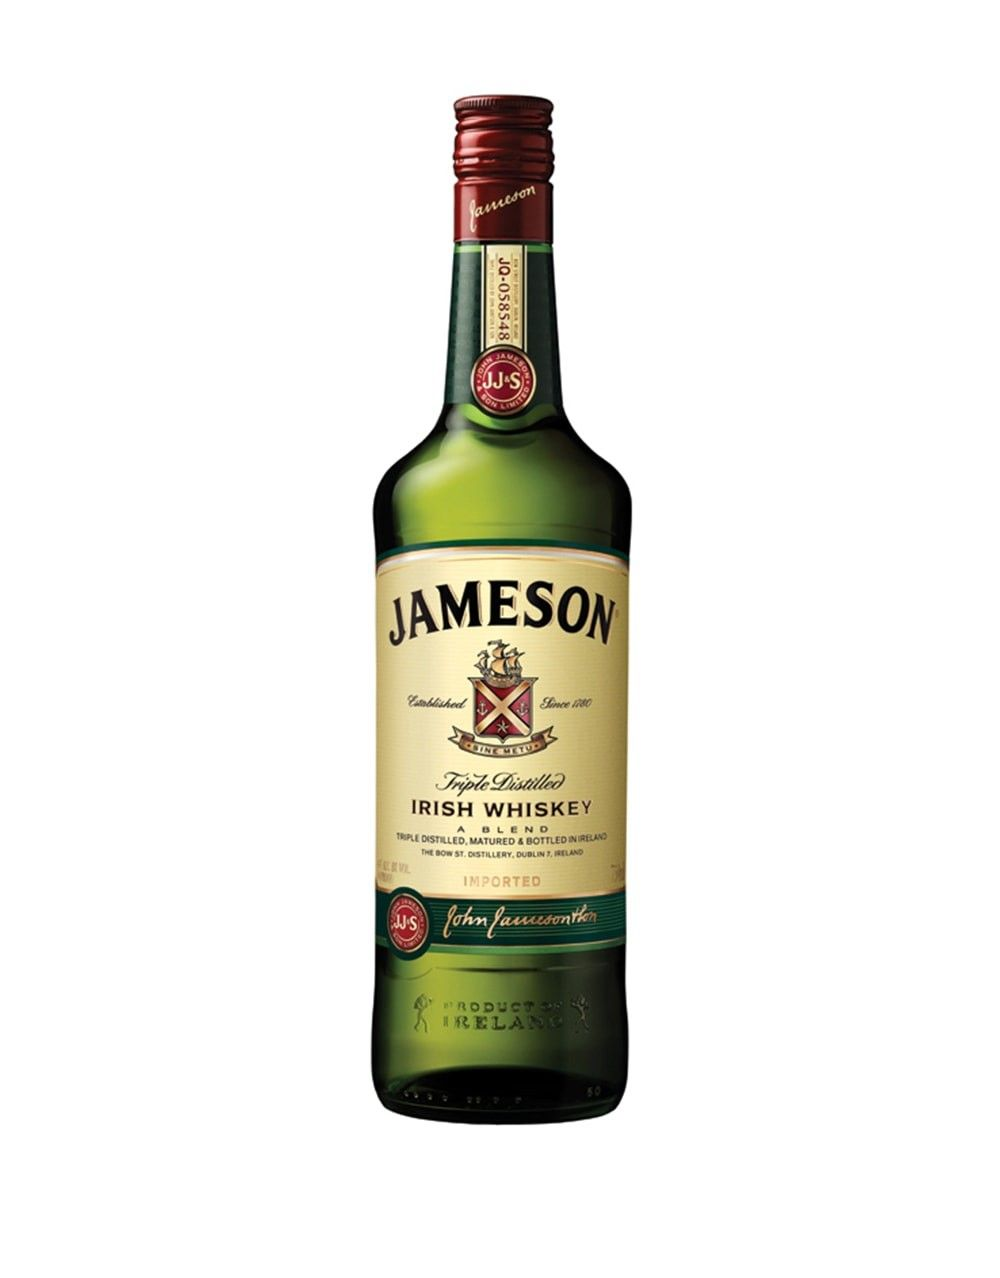 Jameson Irish Whiskey Buy Online Or Send As A Gift